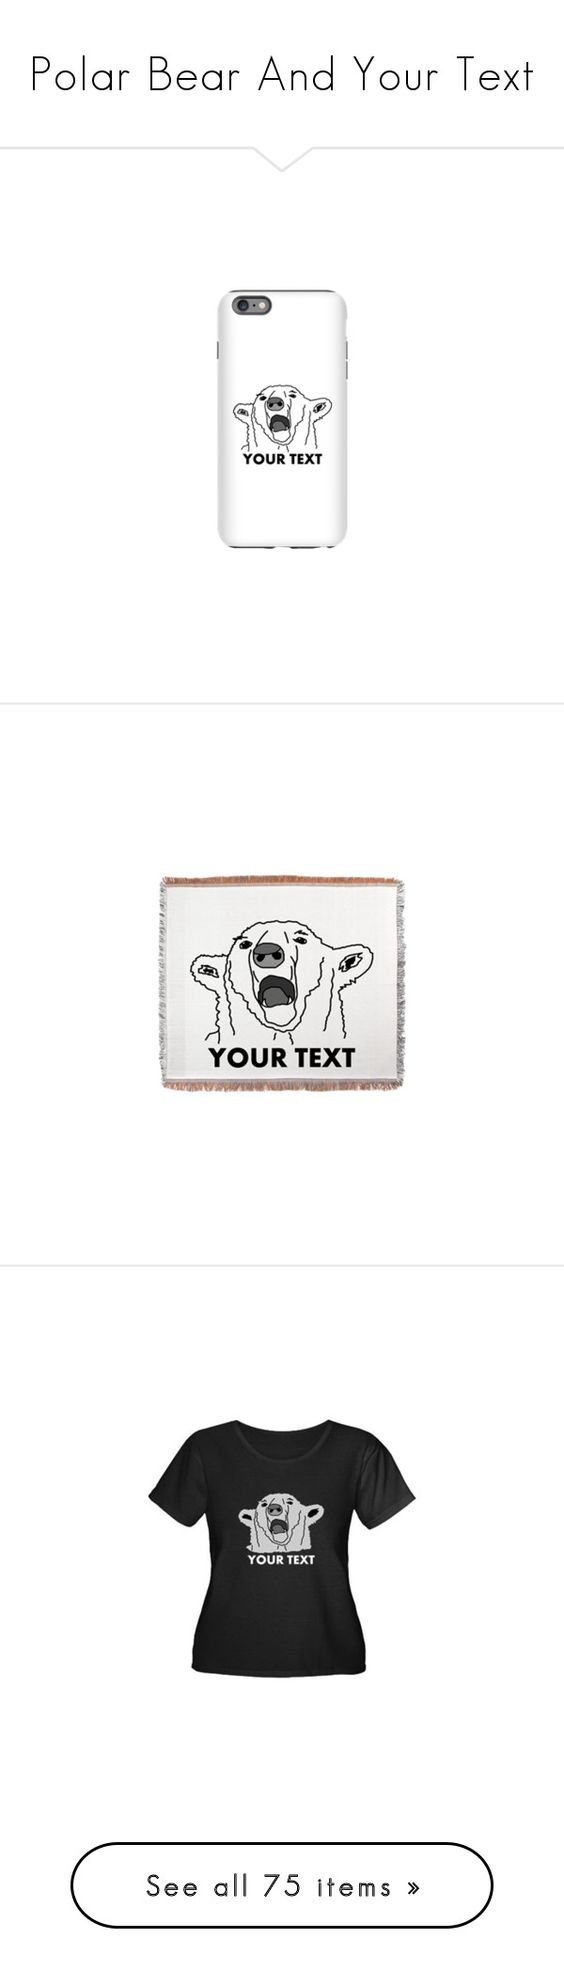 """Polar Bear And Your Text"" by polyart-466 ❤ liked on Polyvore featuring accessories, tech accessories, tops, t-shirts, bear tee, women plus size tops, plus size print tops, plus size tops, pattern tees and home"